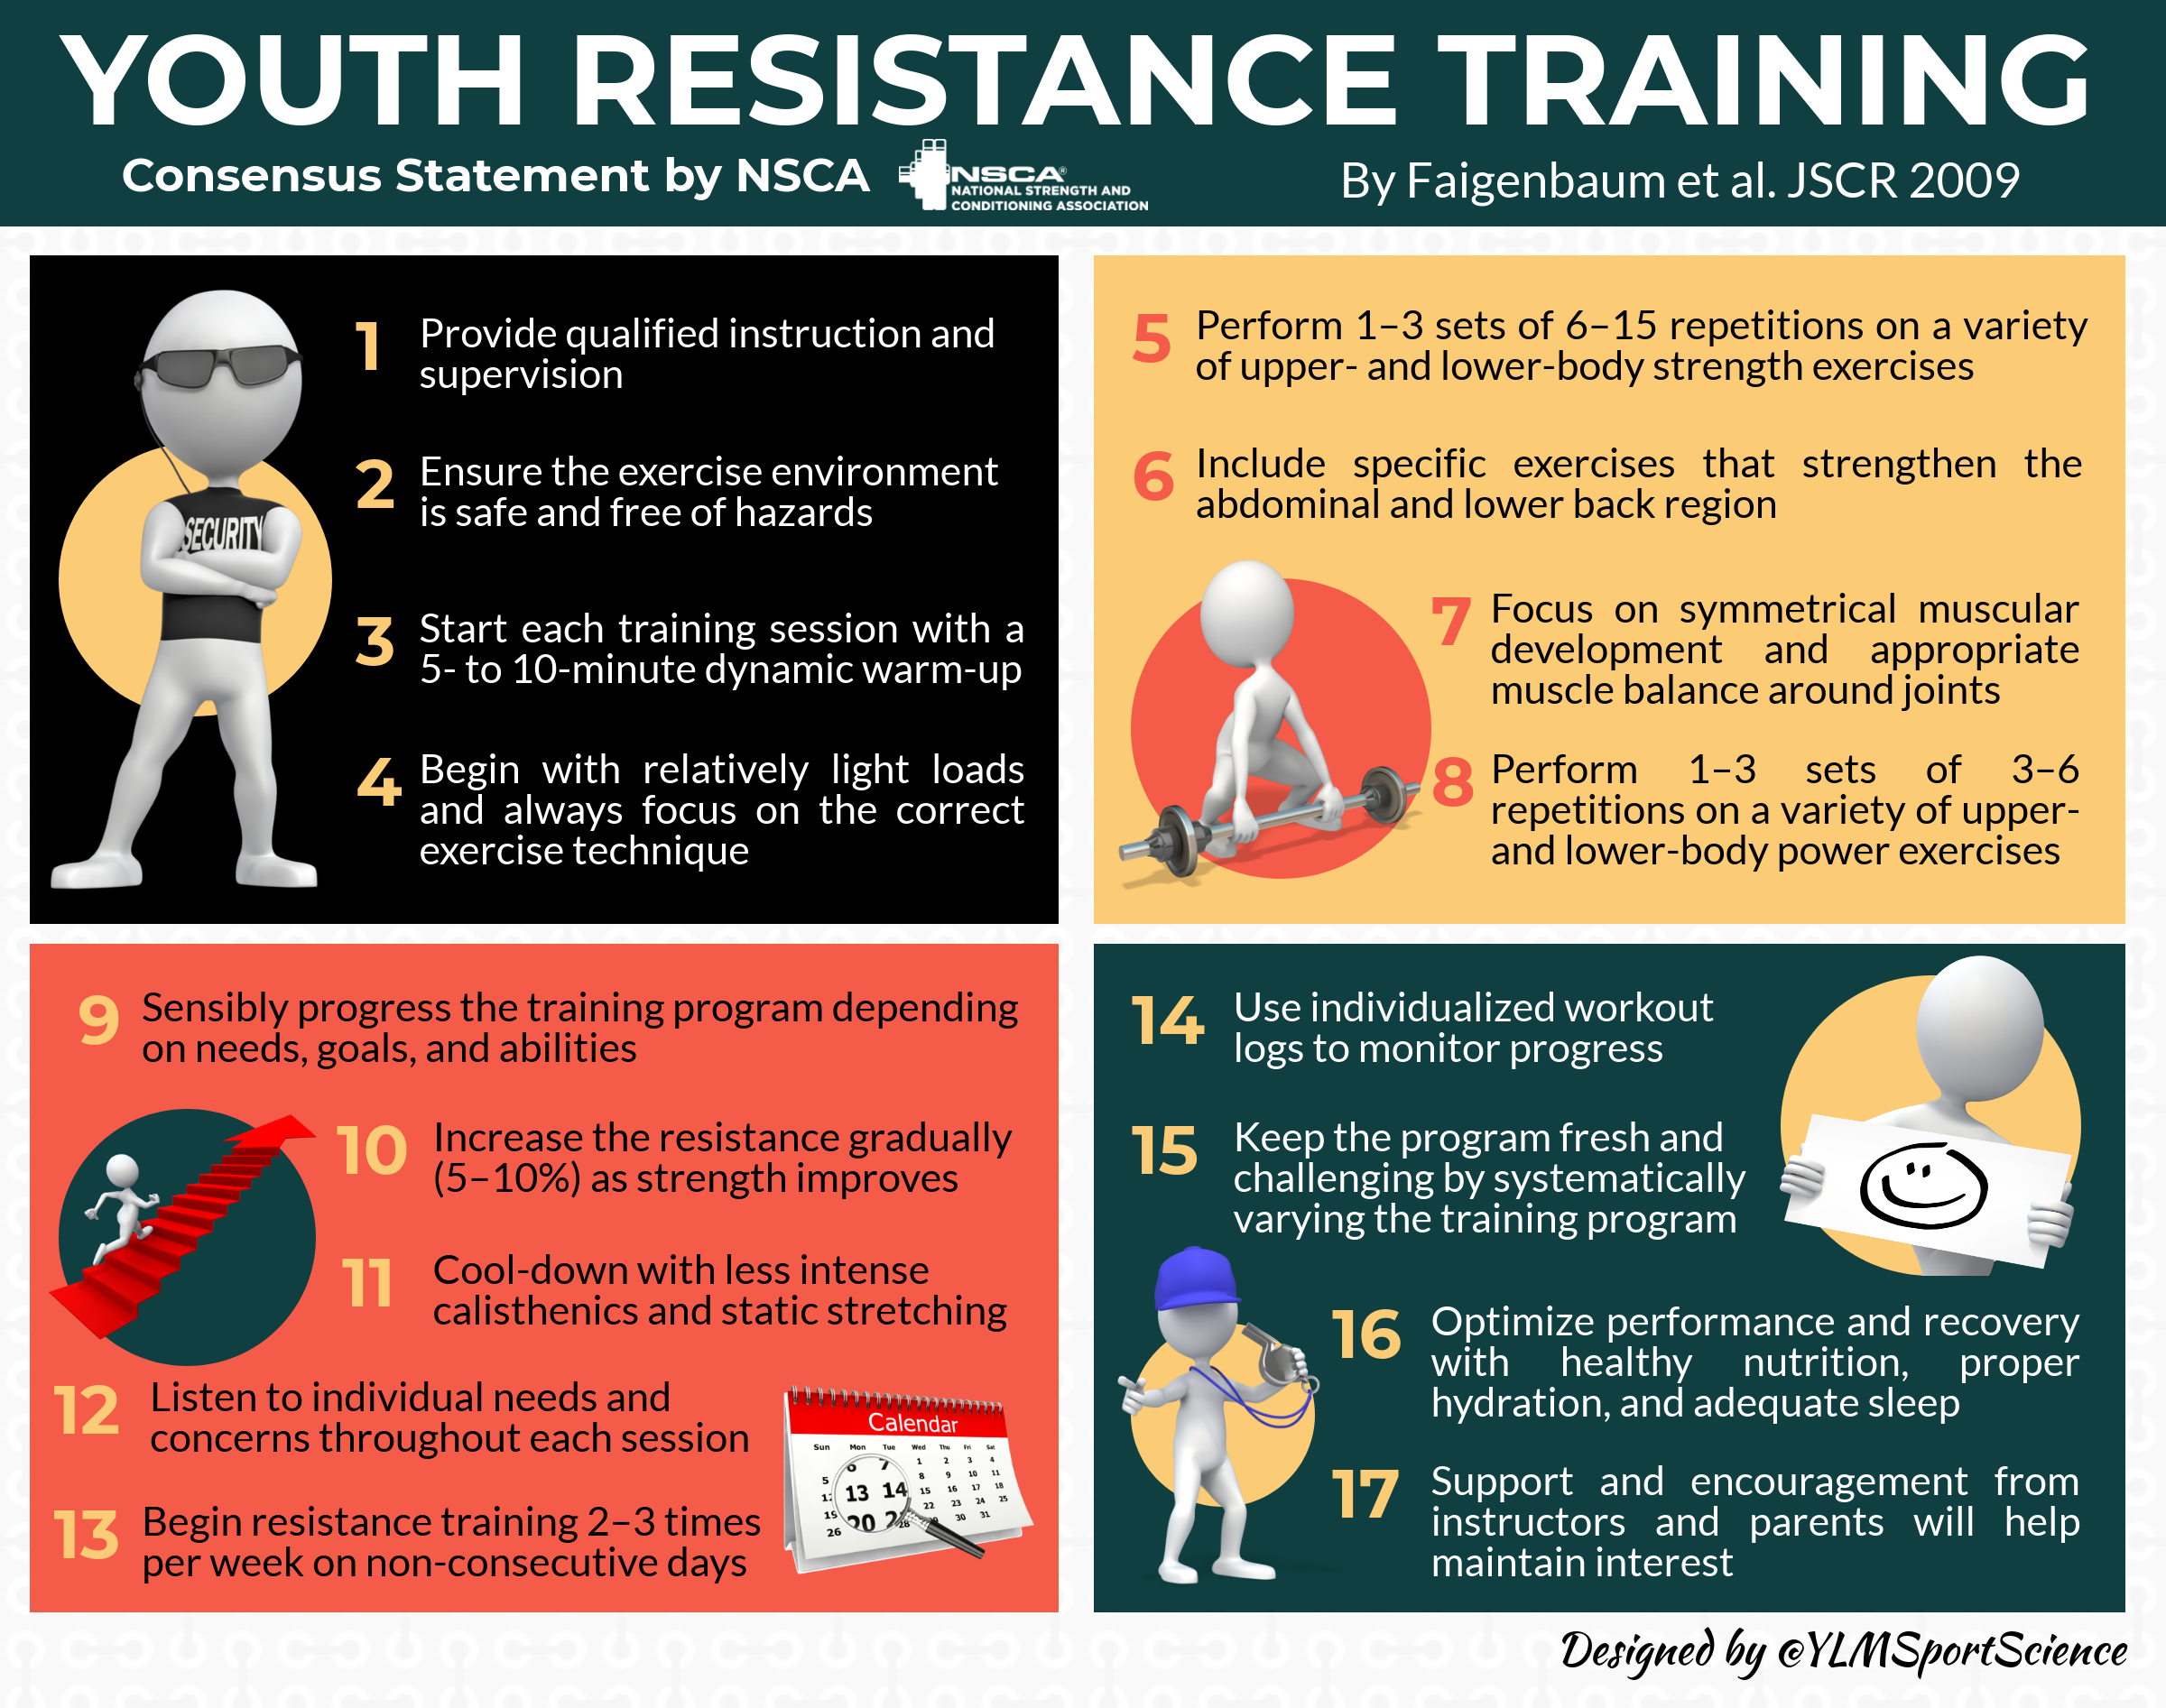 694. Youth resistance training